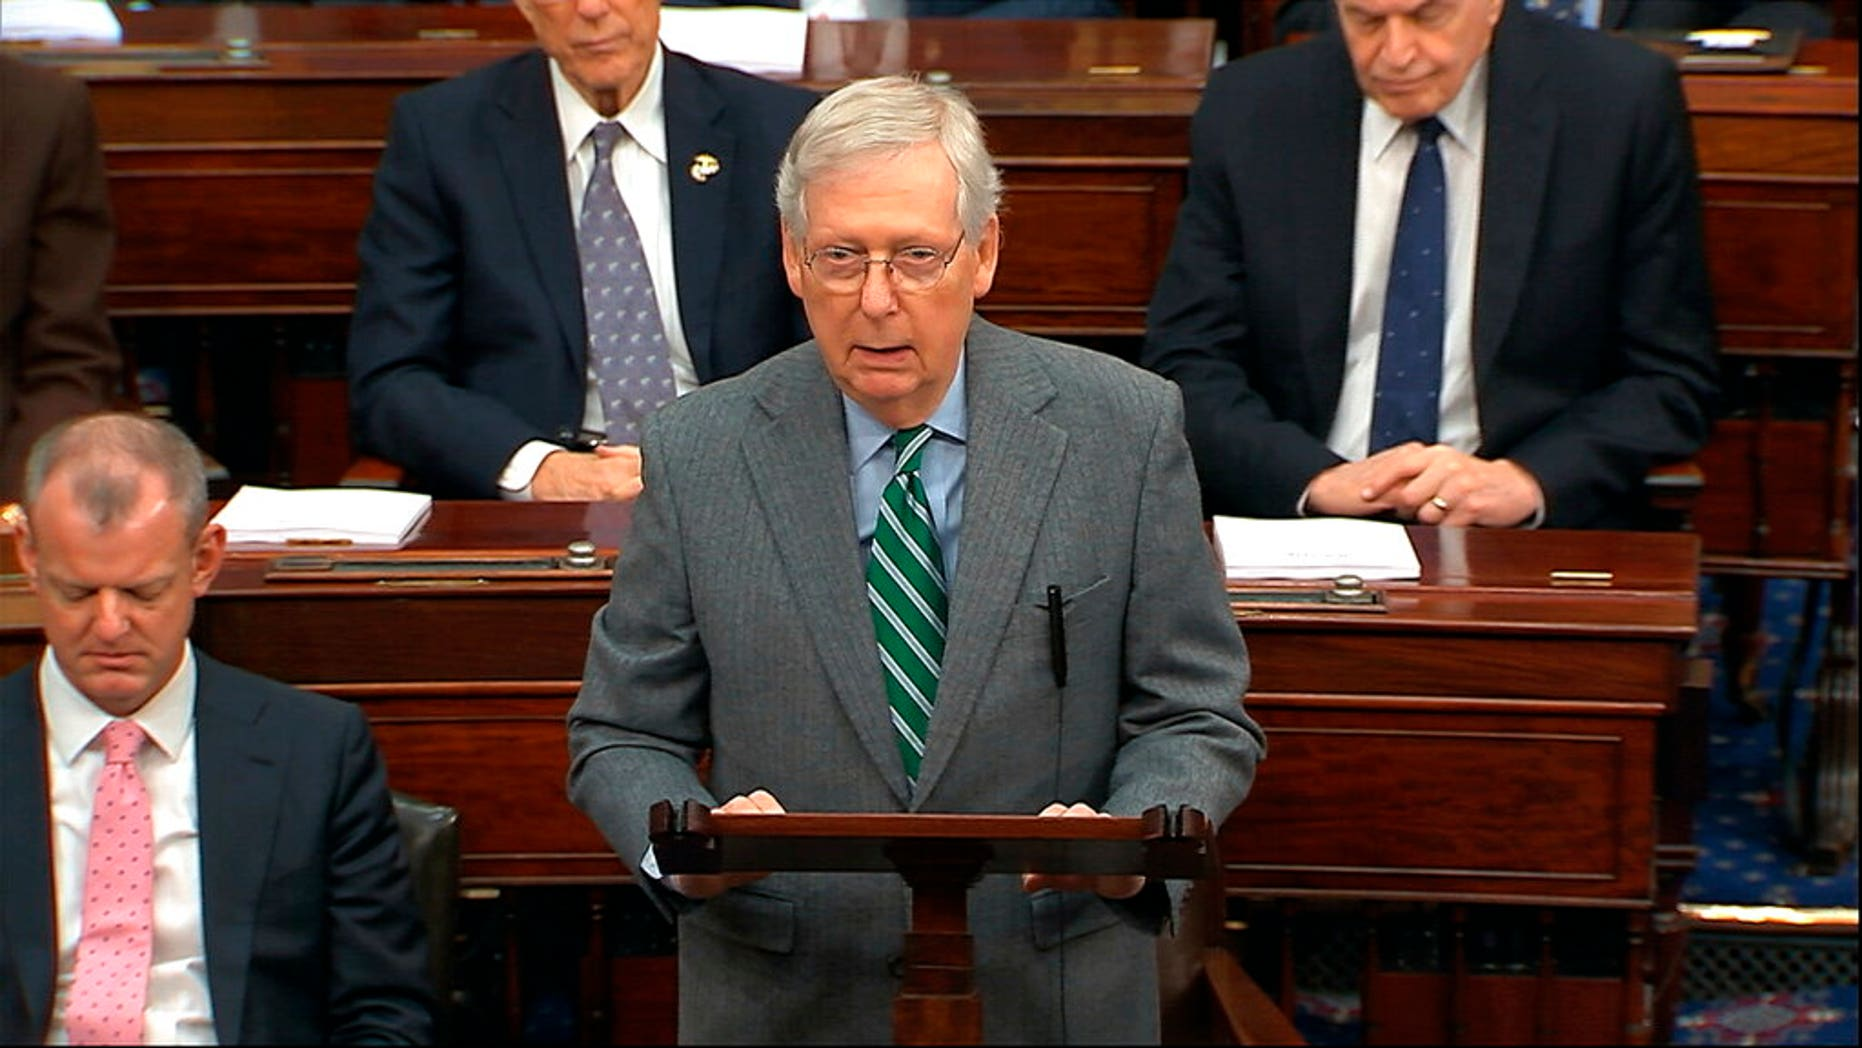 In this image from video, Majority Leader Sen. Mitch McConnell, R-Ky., speaks as the impeachment trial against President Donald Trump begins in the Senate at the U.S. Capitol in Washington, Thursday, Jan. 16, 2020. (Senate Television via AP)